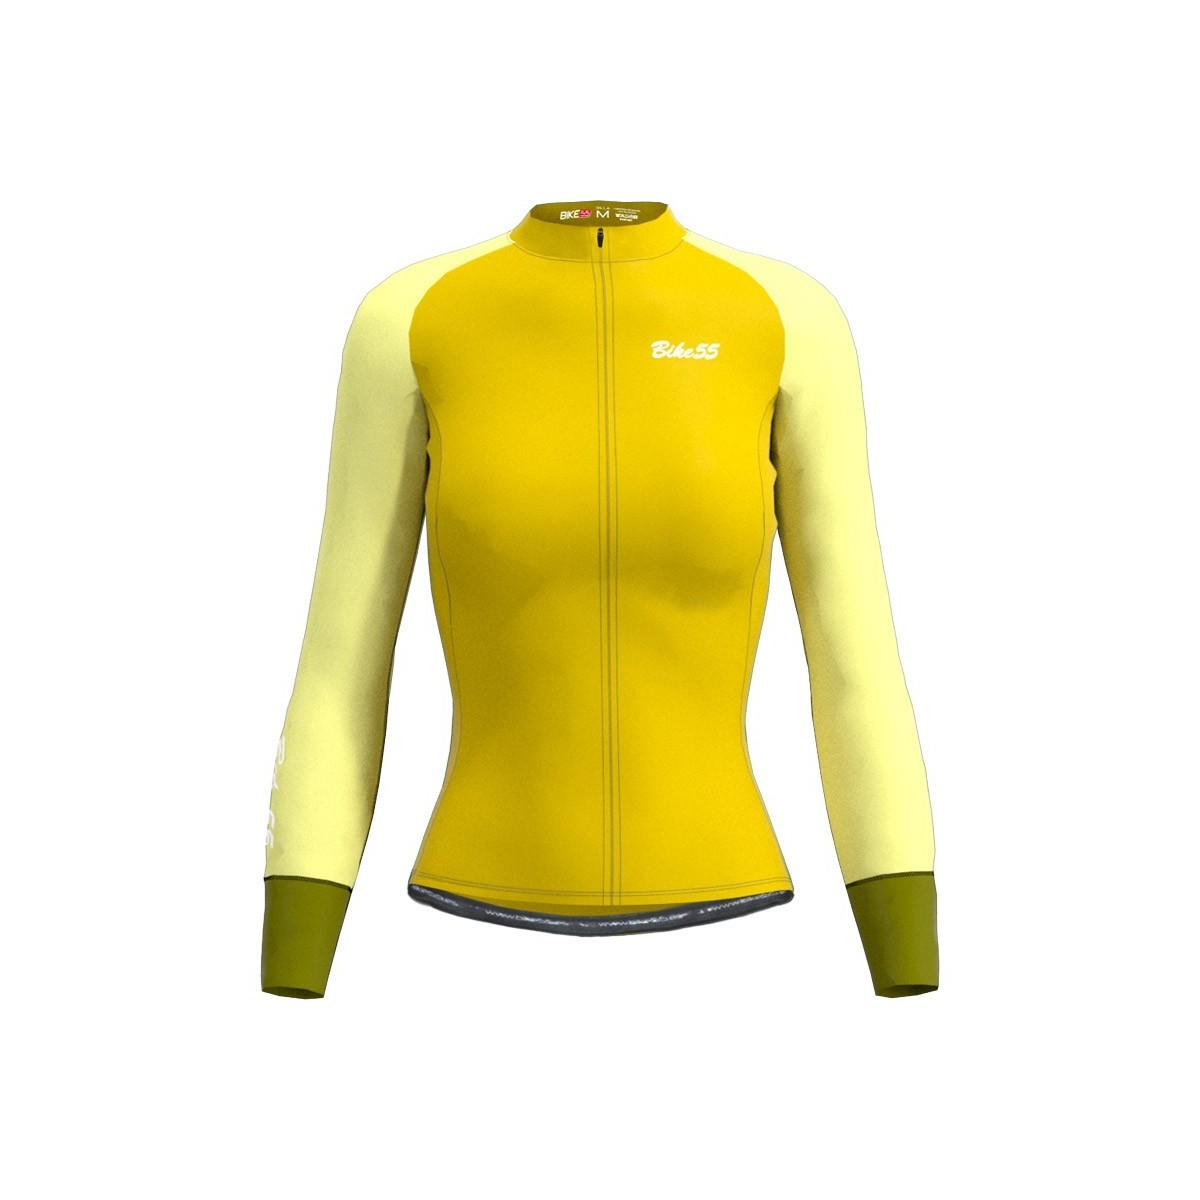 Maillot Largo Smooth ll - Amarillo Mostaza